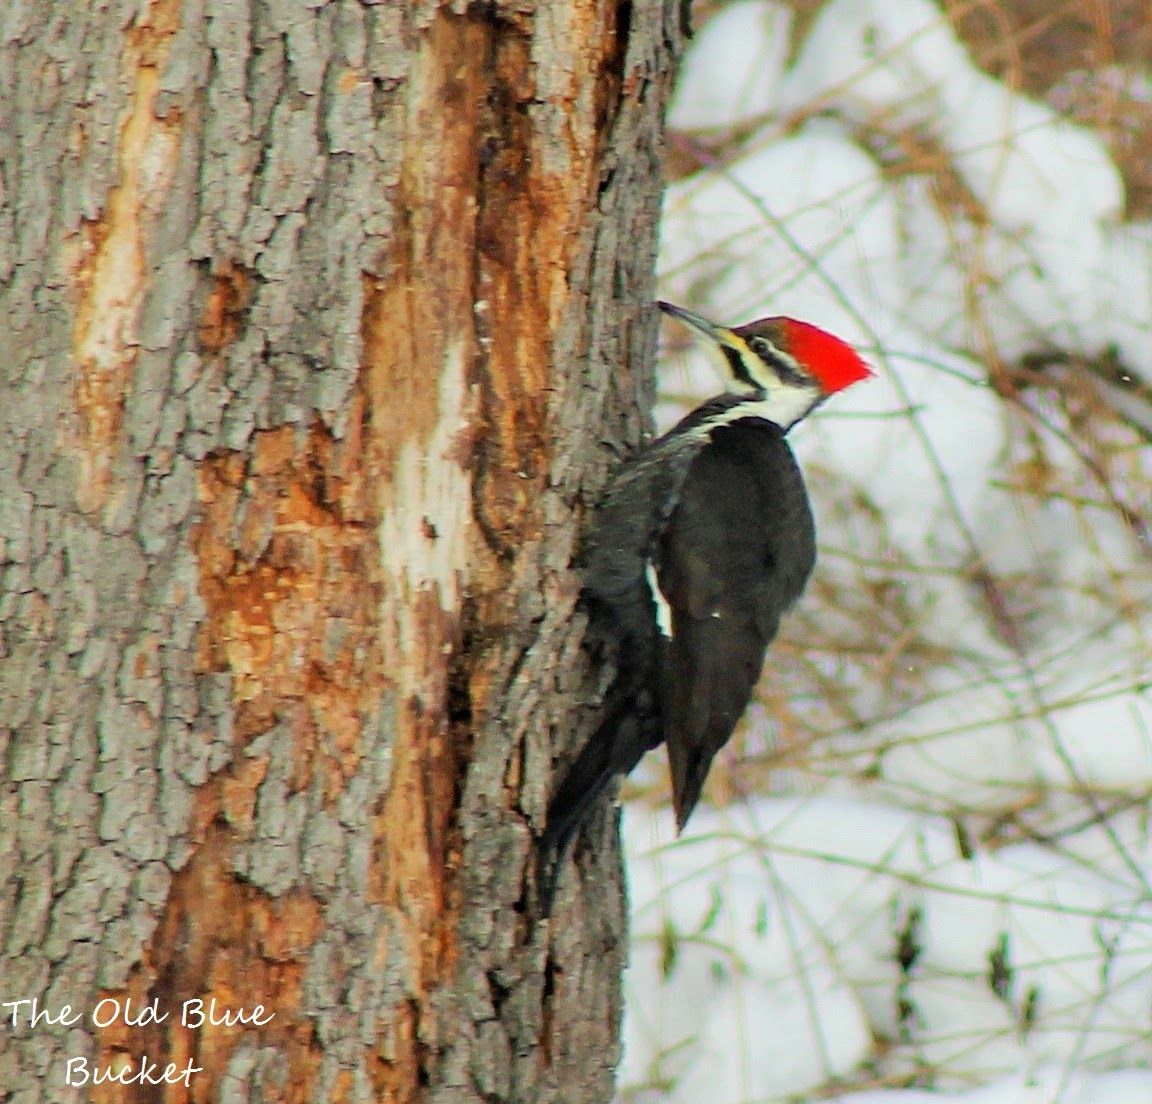 pileated woodpecker searching for insects the old blue bucket